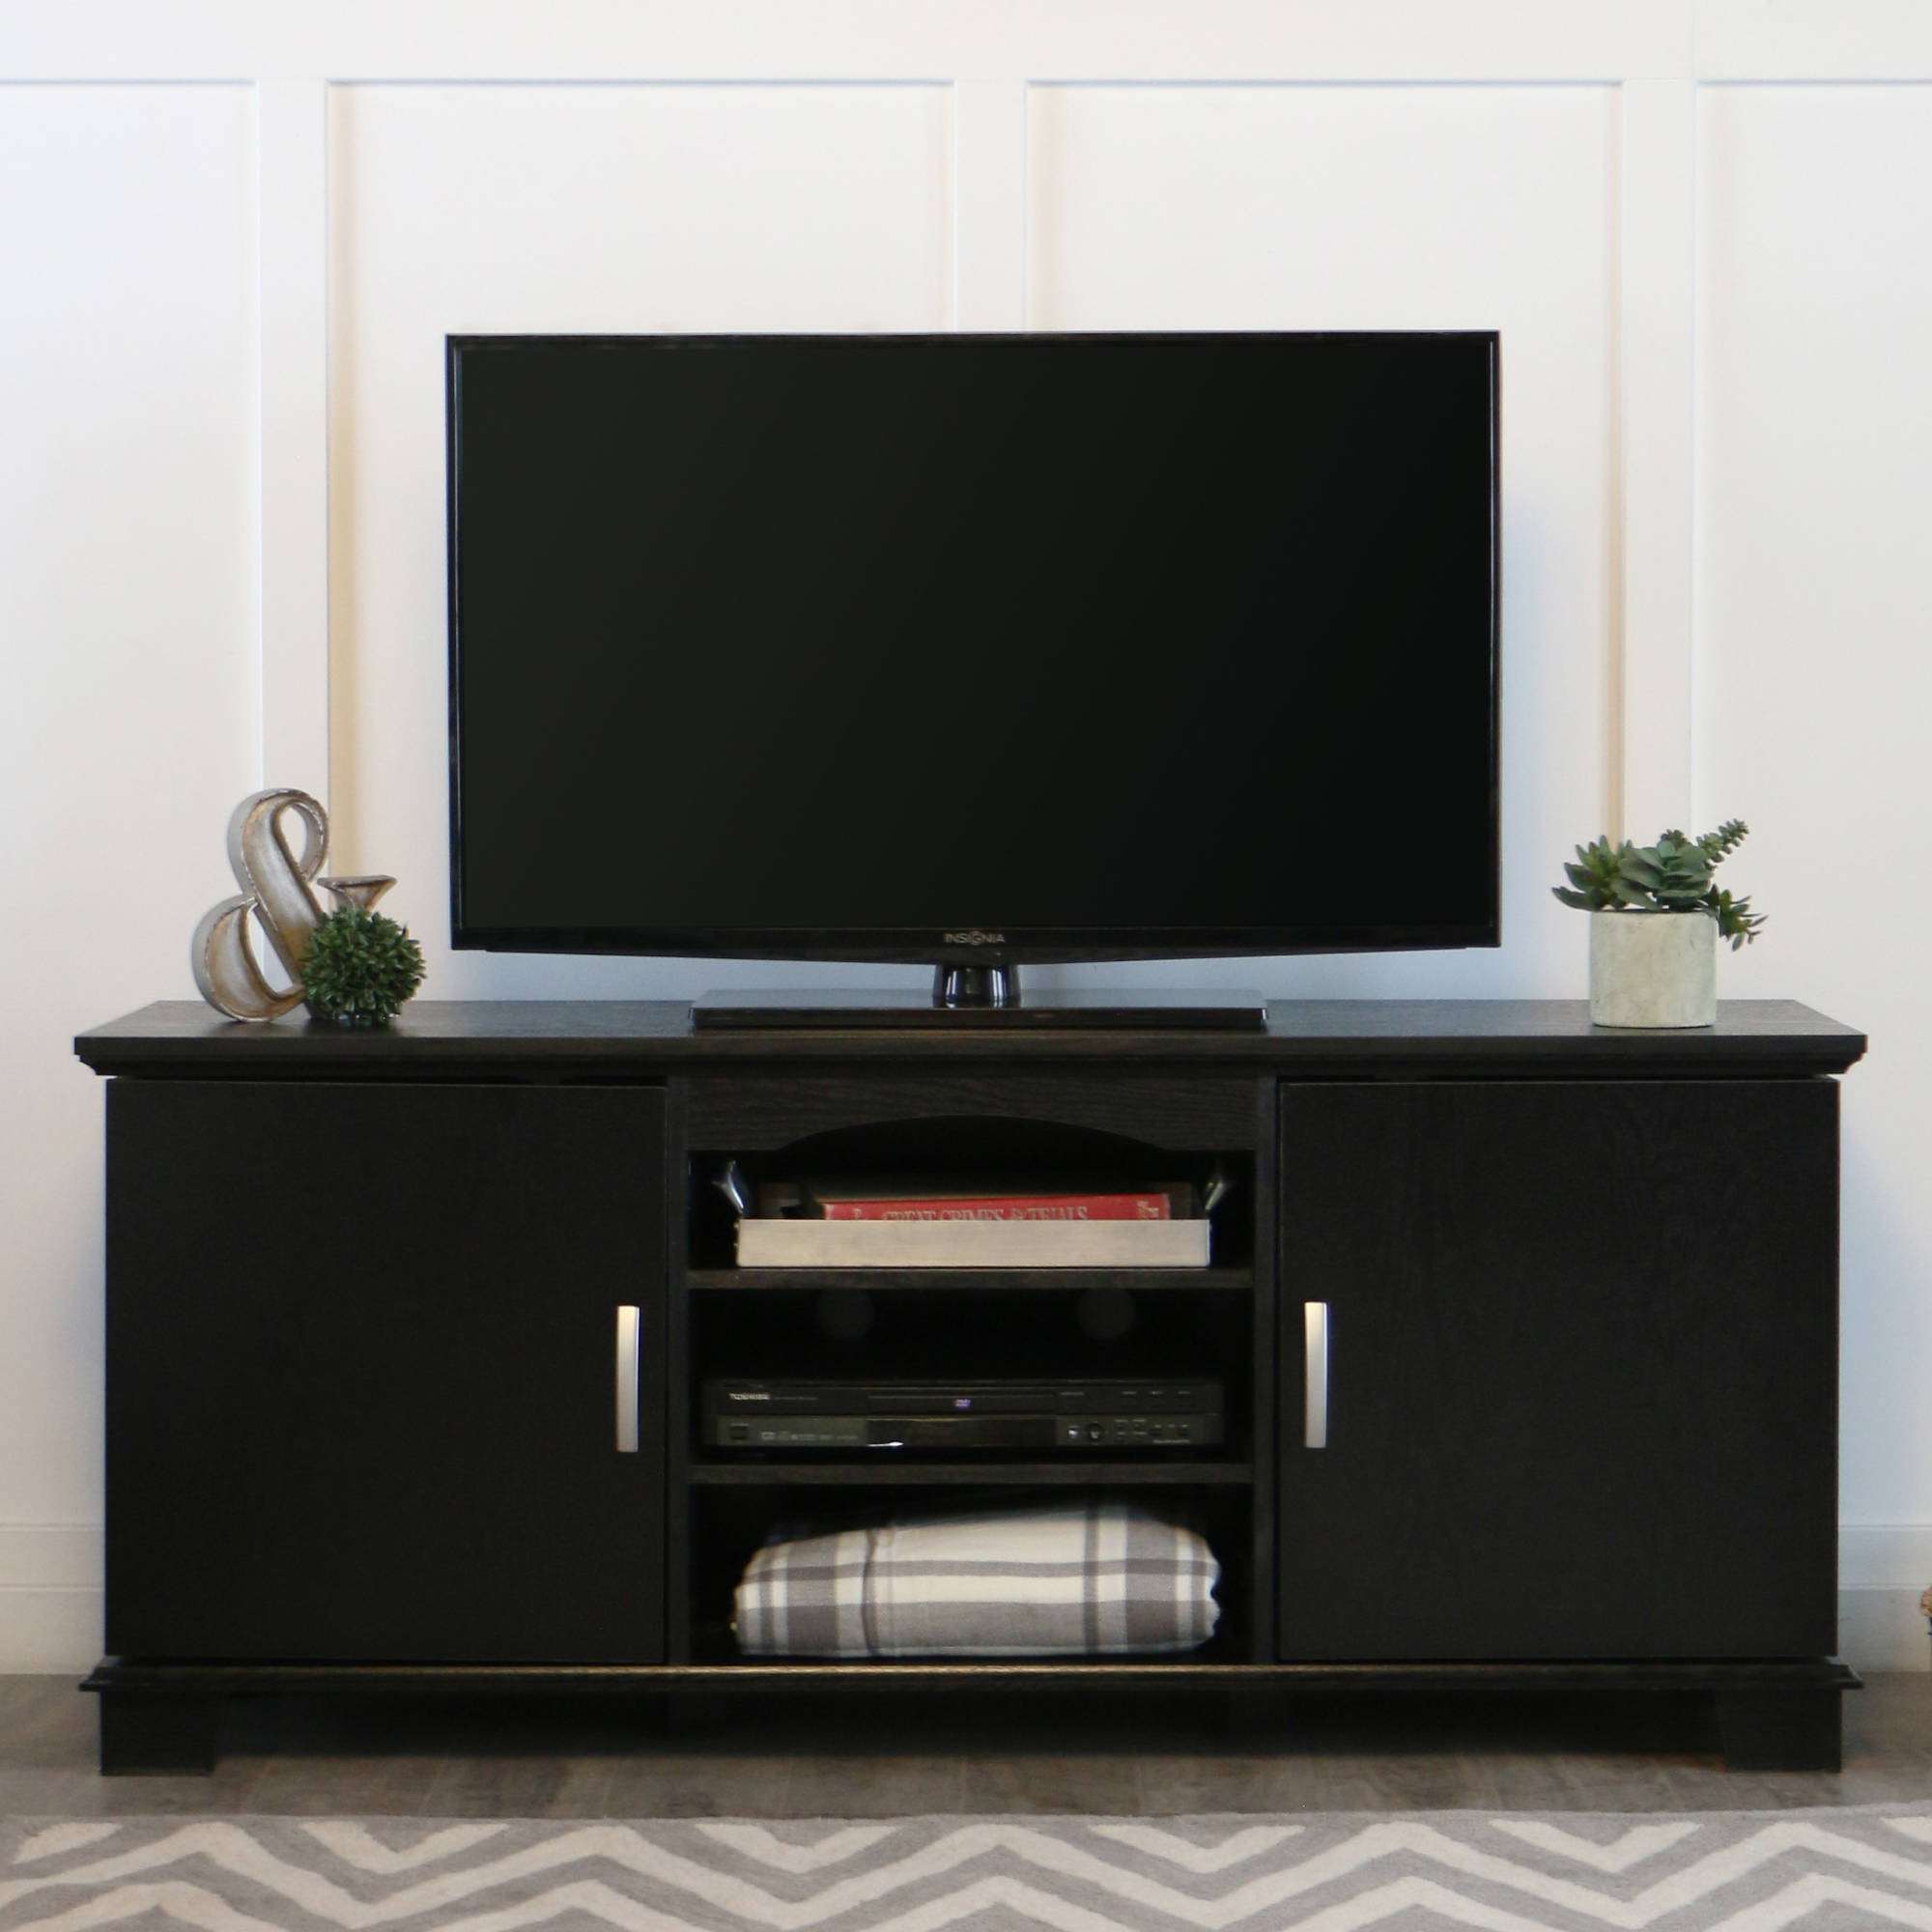 Bello Cottonwood 54 In. Tv Stand - Sawcut Espresso - Walmart with regard to Oxford 60 Inch Tv Stands (Image 7 of 30)